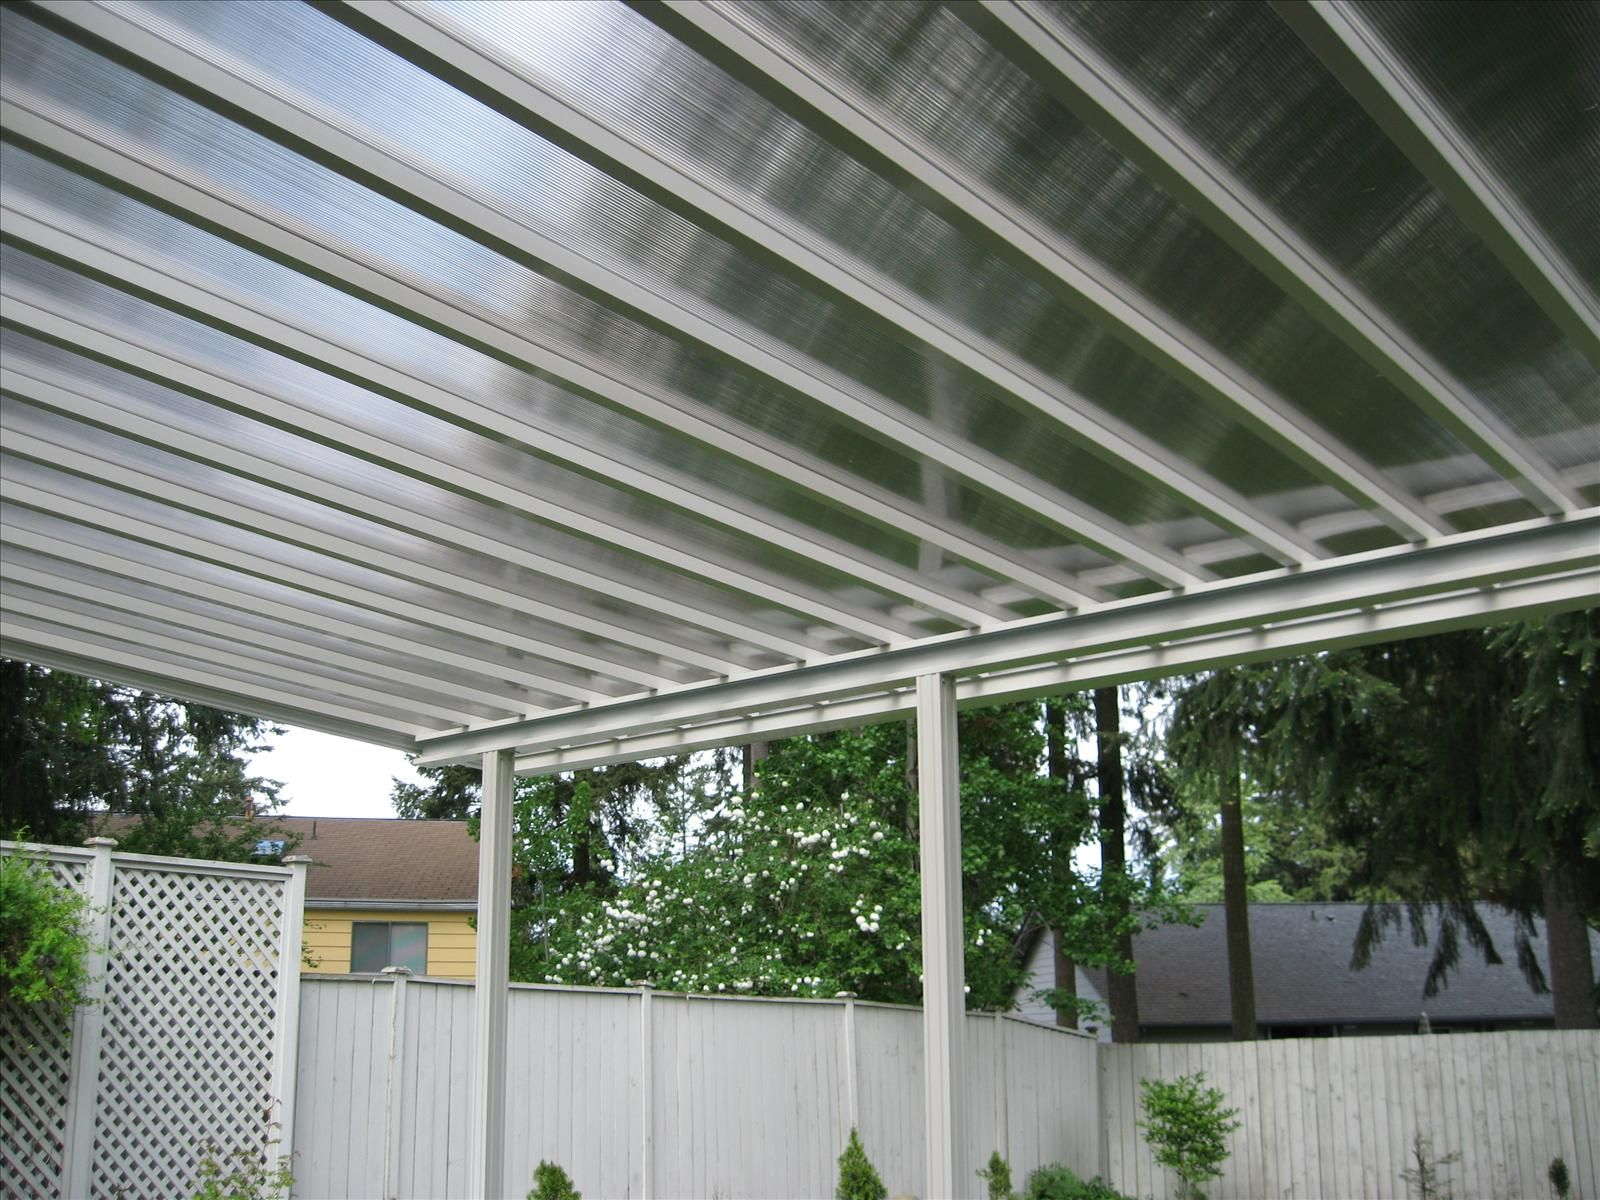 Merveilleux Your Seattle Source For Patio Covers, Patio Canopy Solutions And Deck Covers  In Seattle, Bellevue, Redmond, Kirkland And The Pacific Northwest In ...